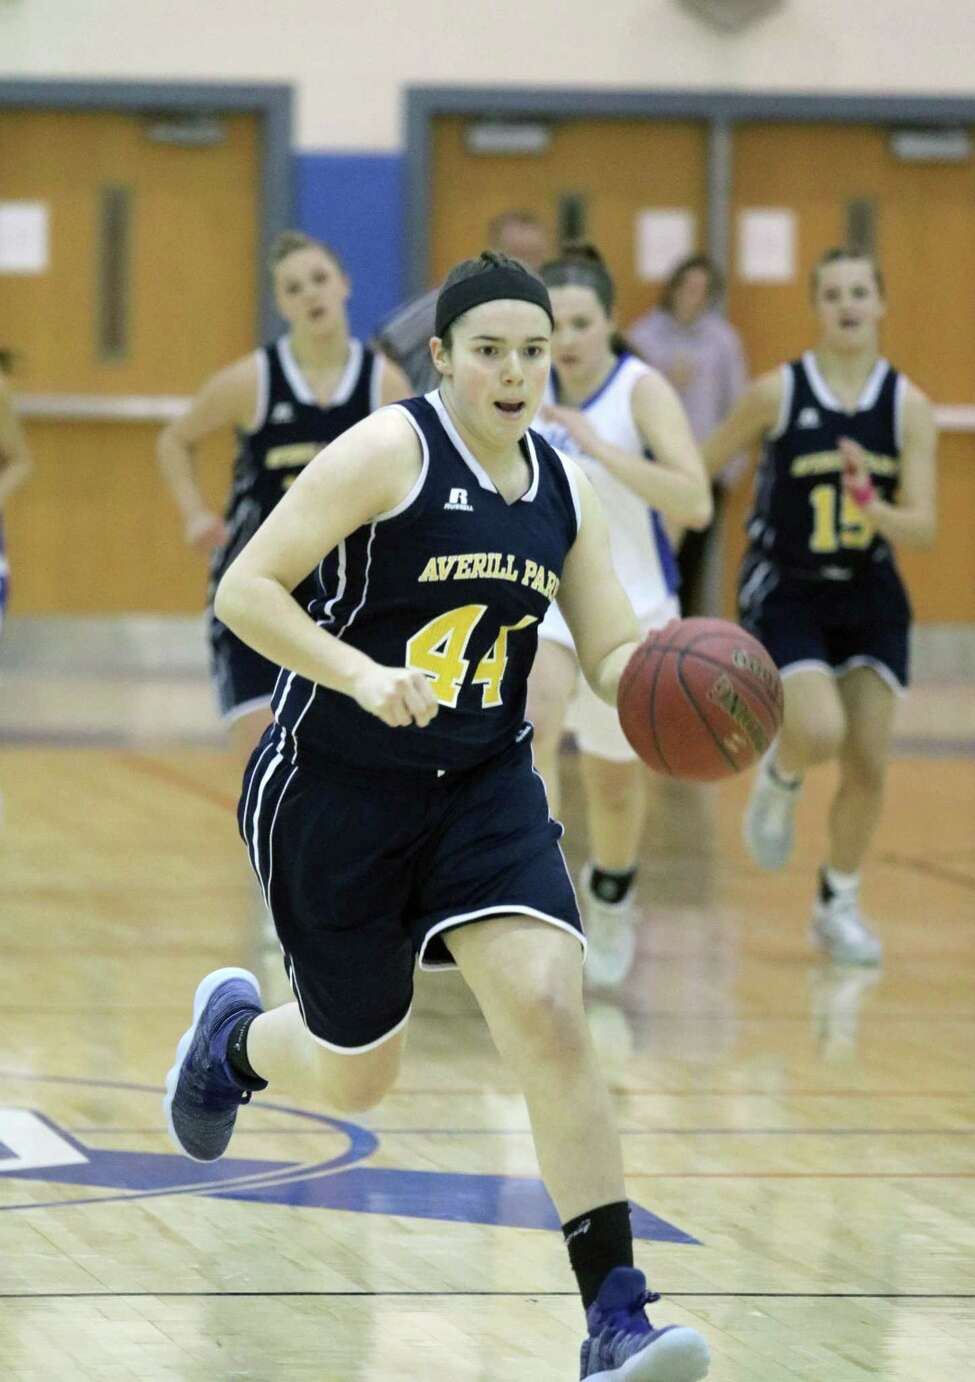 Averill Park's Olivia Kelley moves the ball down the court during girls varsity basketball action at Saratoga Springs High School Friday, Feb. 2, 2018. (Ed Burke - Special to The Times Union)